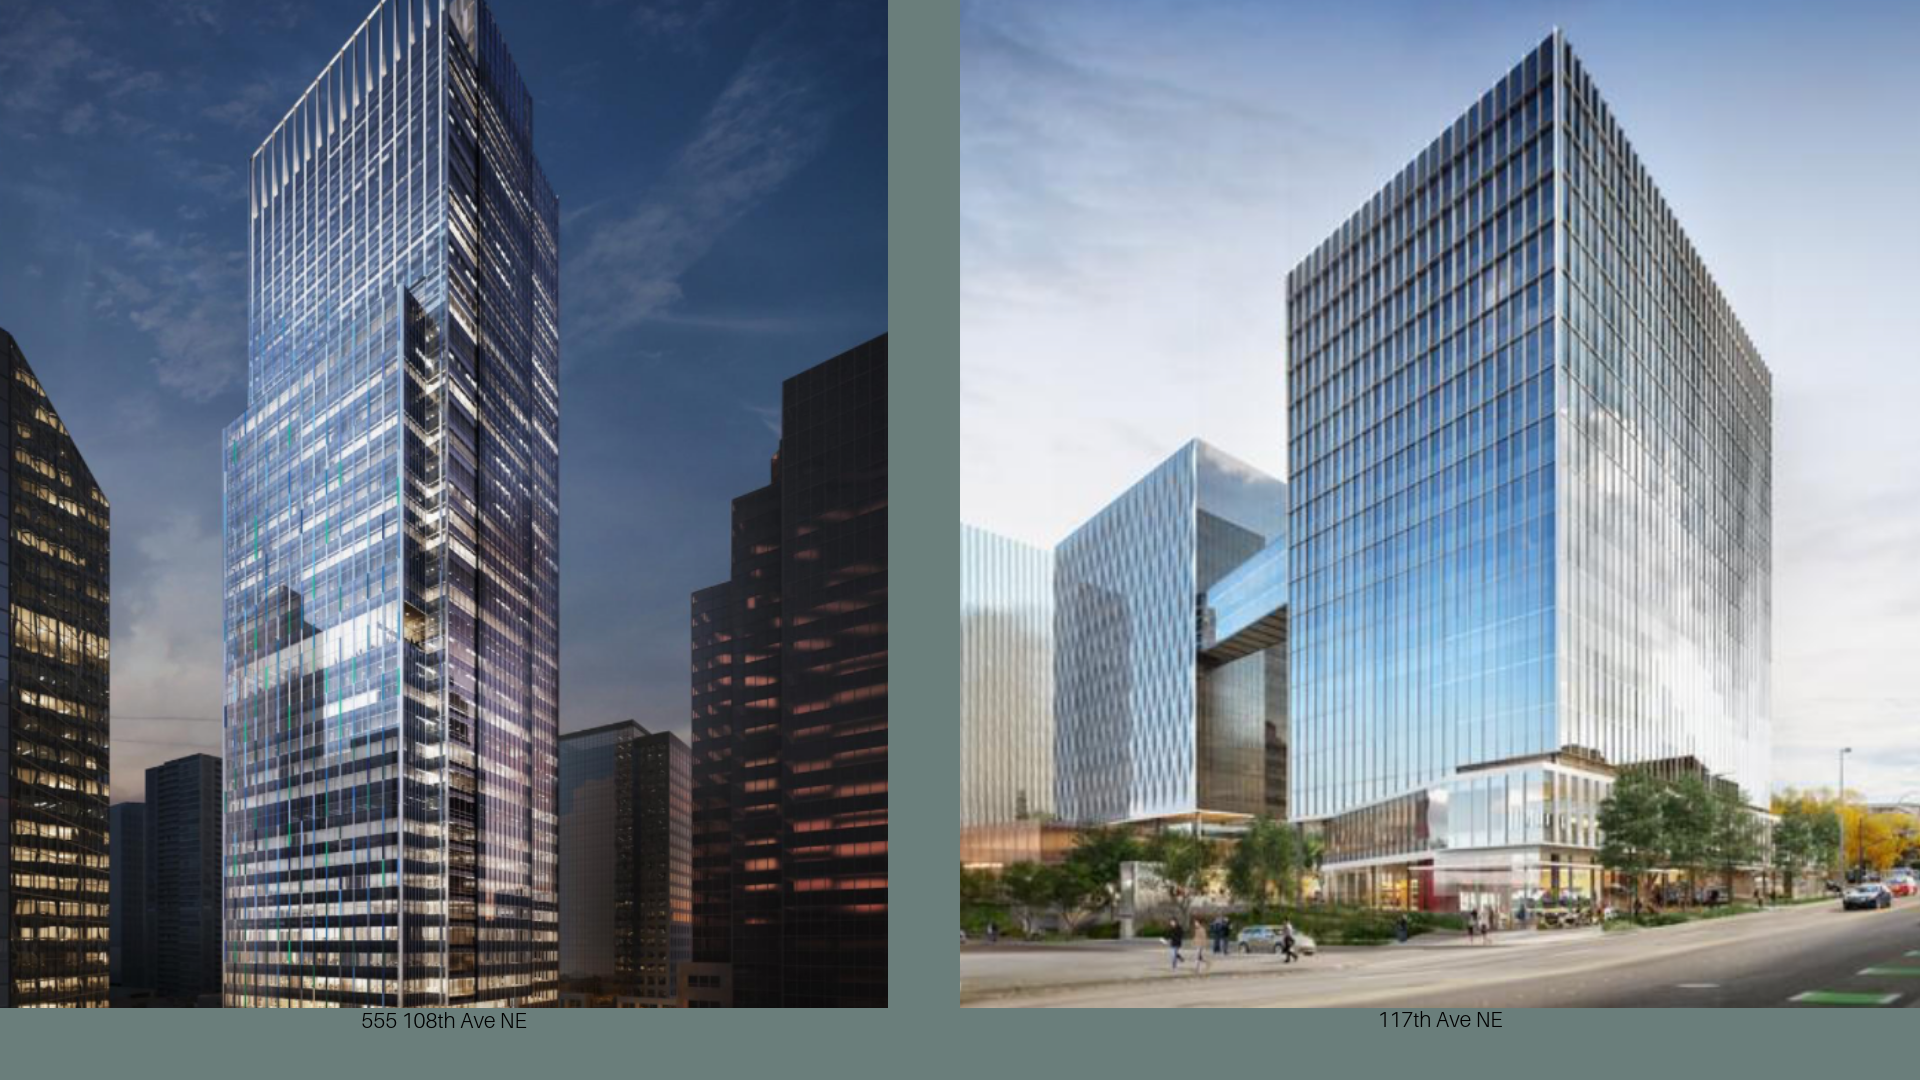 Seattle based Paul Allen company, Vulcan Real Estate is planning two very major projects in downtown Bellevue. The first of them being a 600-foot tower located at 555 108th Ave NE with 937,000 sqft of office space. The second planned project called Bellevue Plaza located at 117 106th Ave NE will feature 3 towers ranging from 16-17 stories with a total of roughly 1 million sq ft of office space. It is expected by market observers that Amazon - a company that is quick to bite when it comes to real estate, will lease both.